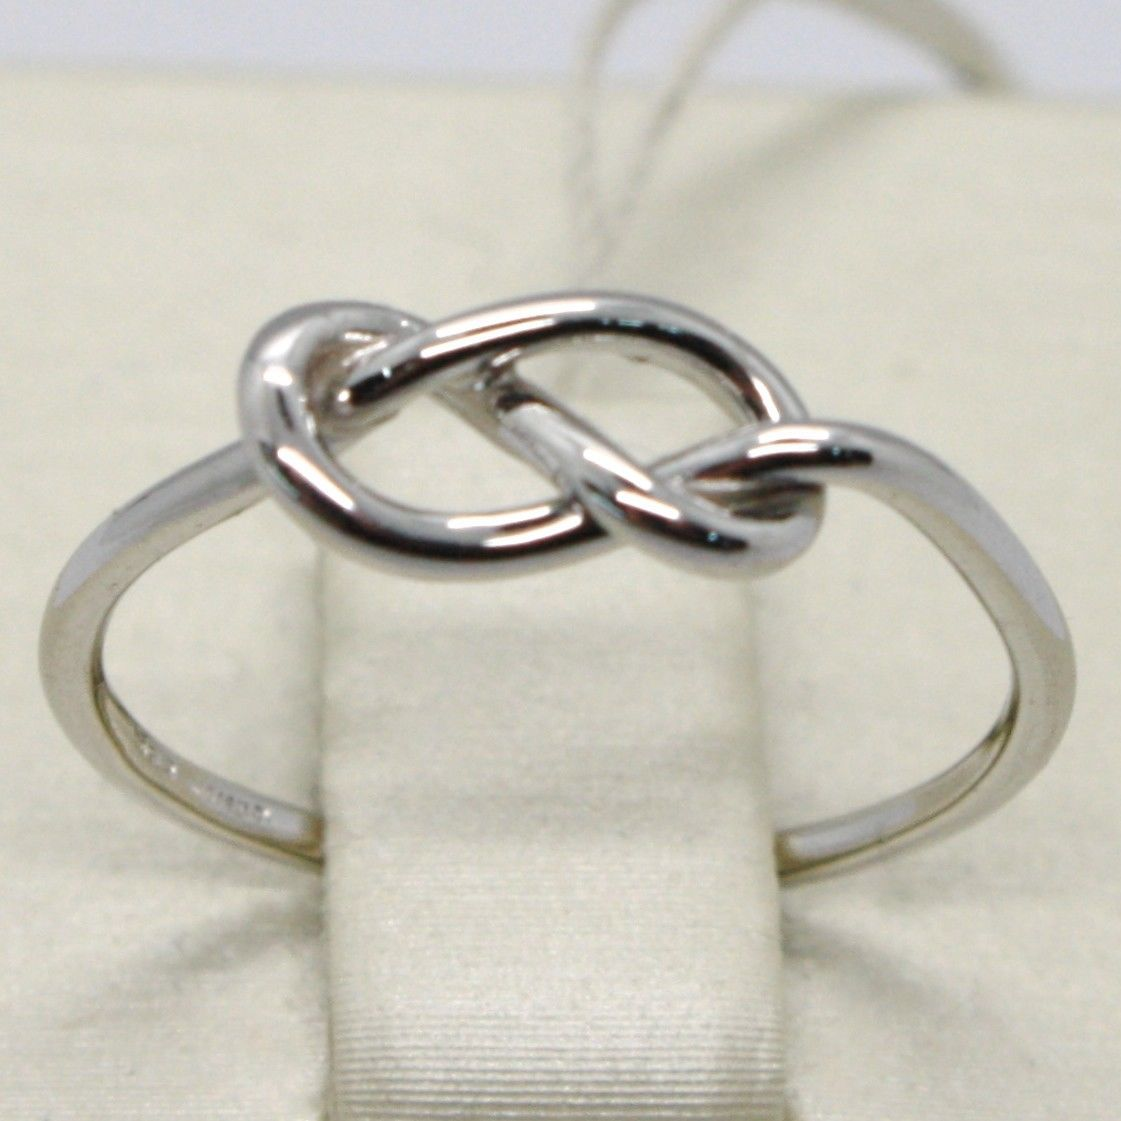 18K WHITE GOLD INFINITE CENTRAL RING, INFINITY, SMOOTH, BRIGHT, MADE IN ITALY